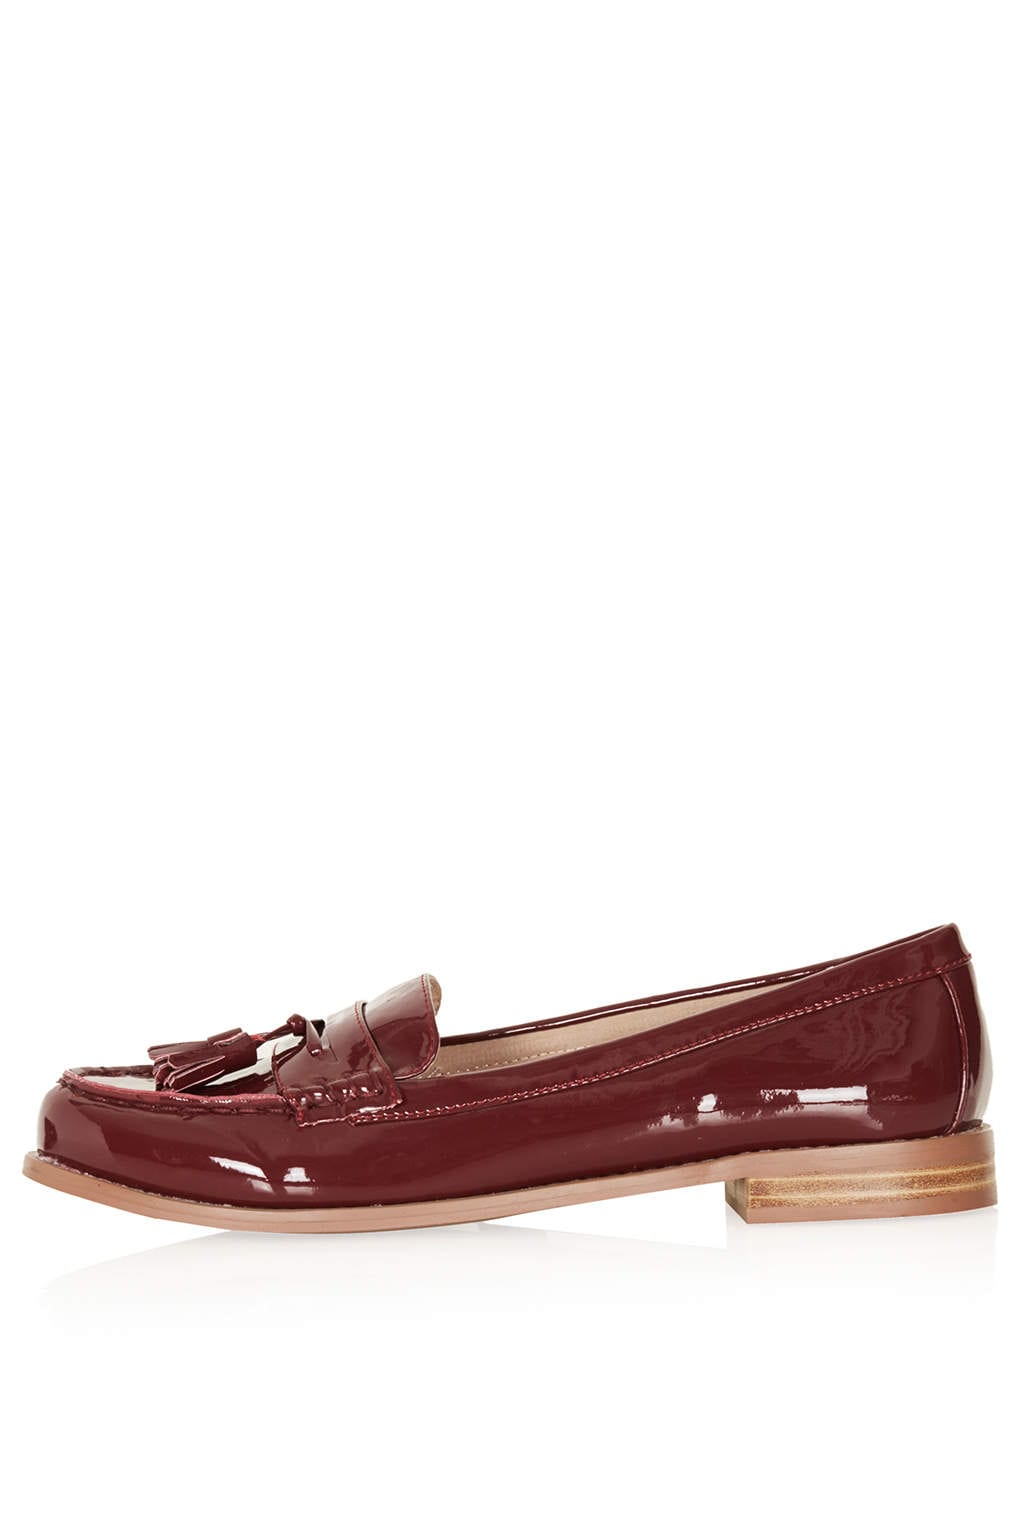 LAVERNE-Tassle-Loafers 16 Amazing and Comfortable Women Flat shoes/Loafers